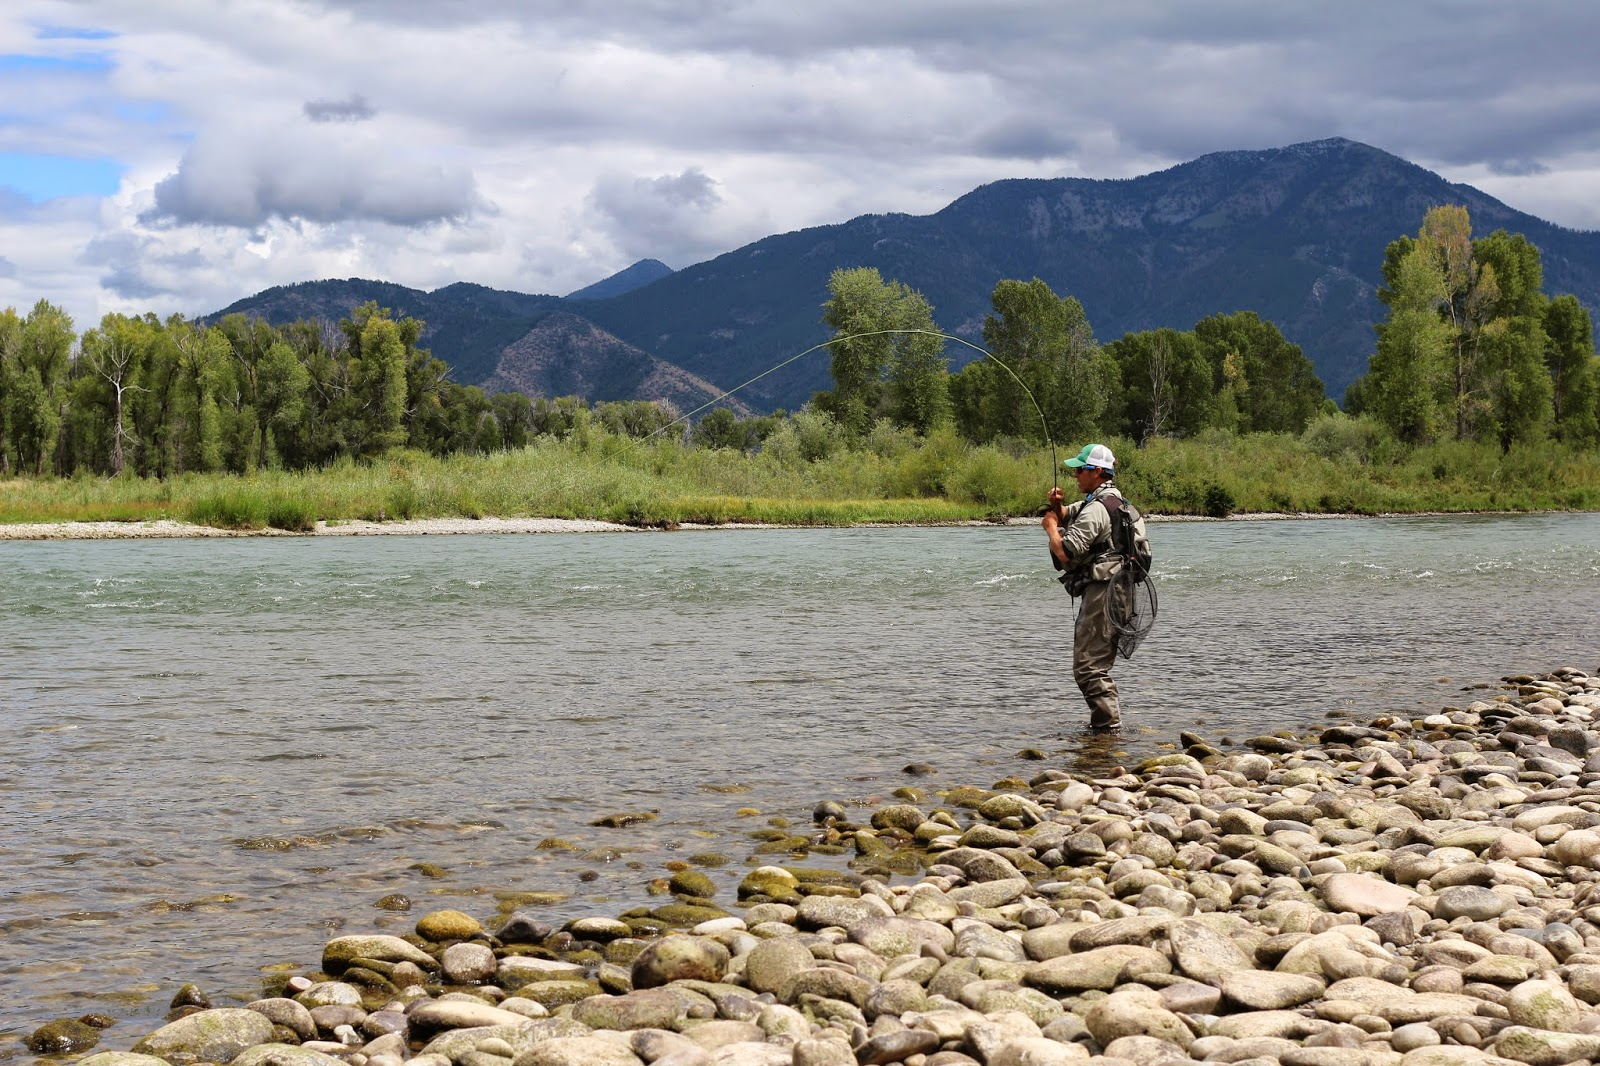 Jay scott outdoors jackson hole wyoming fly fishing photos 10 for Fly fishing jackson hole